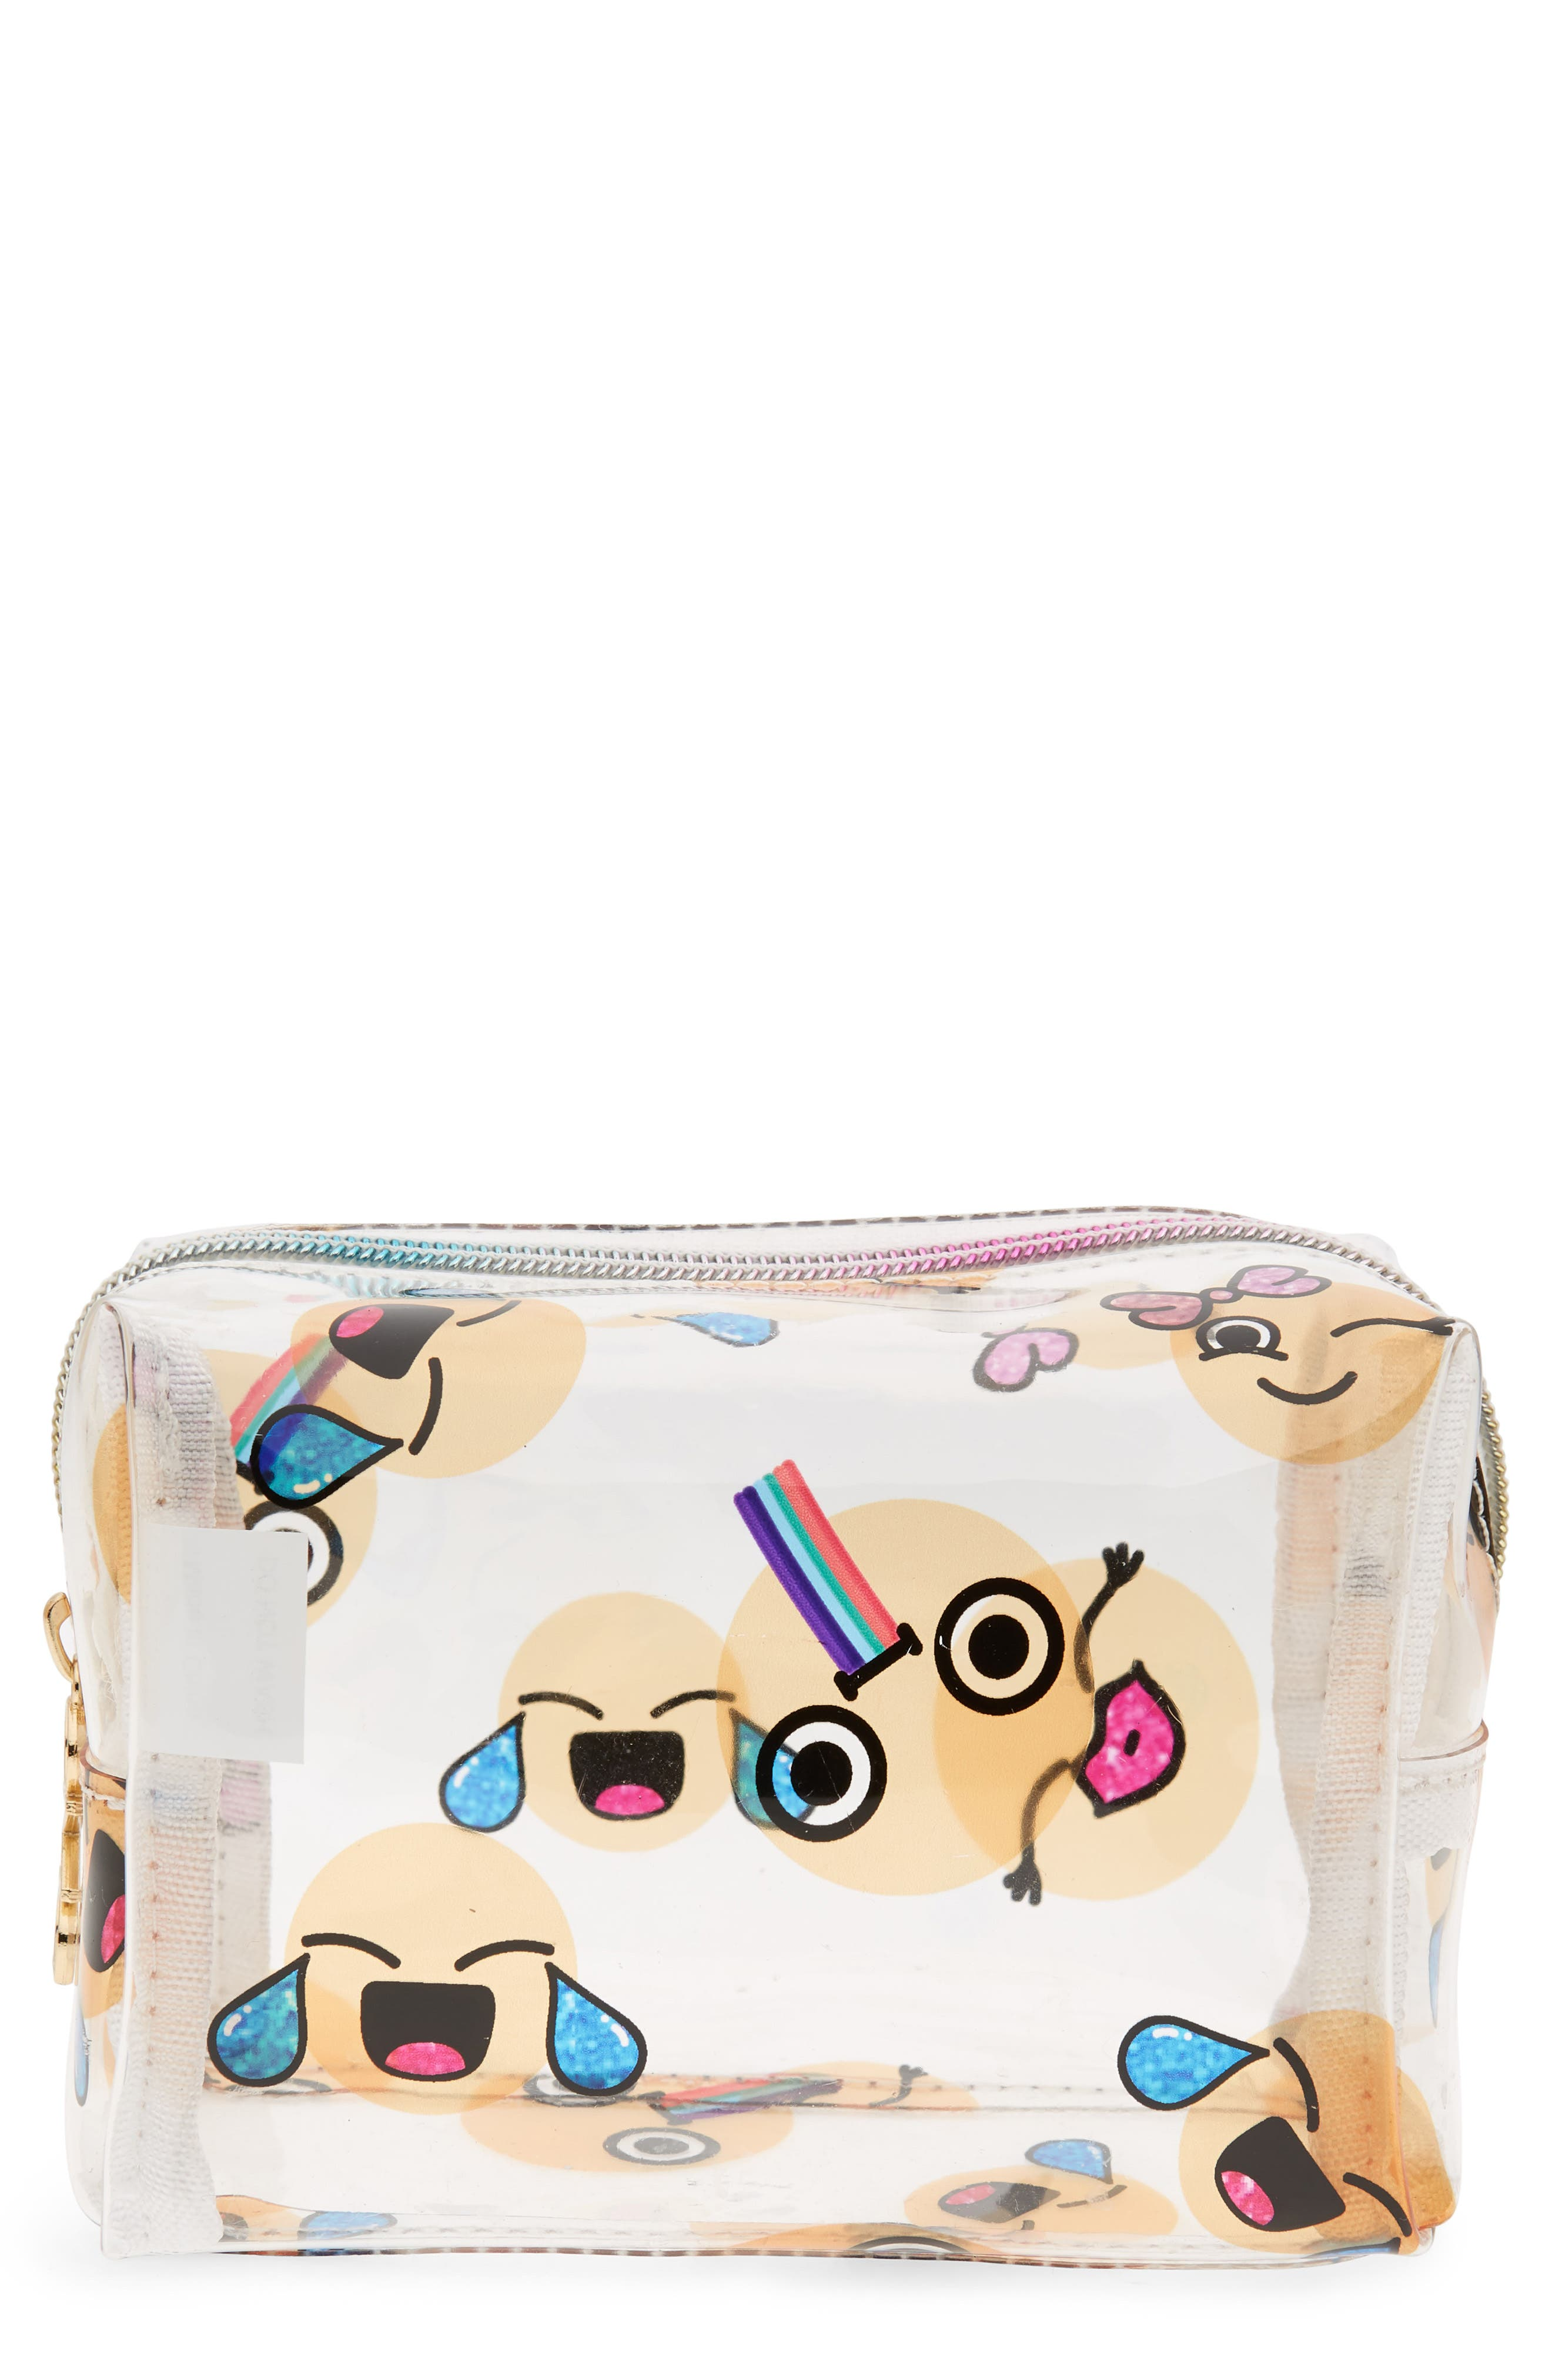 OMG Emoji Cosmetics Case (Kids)